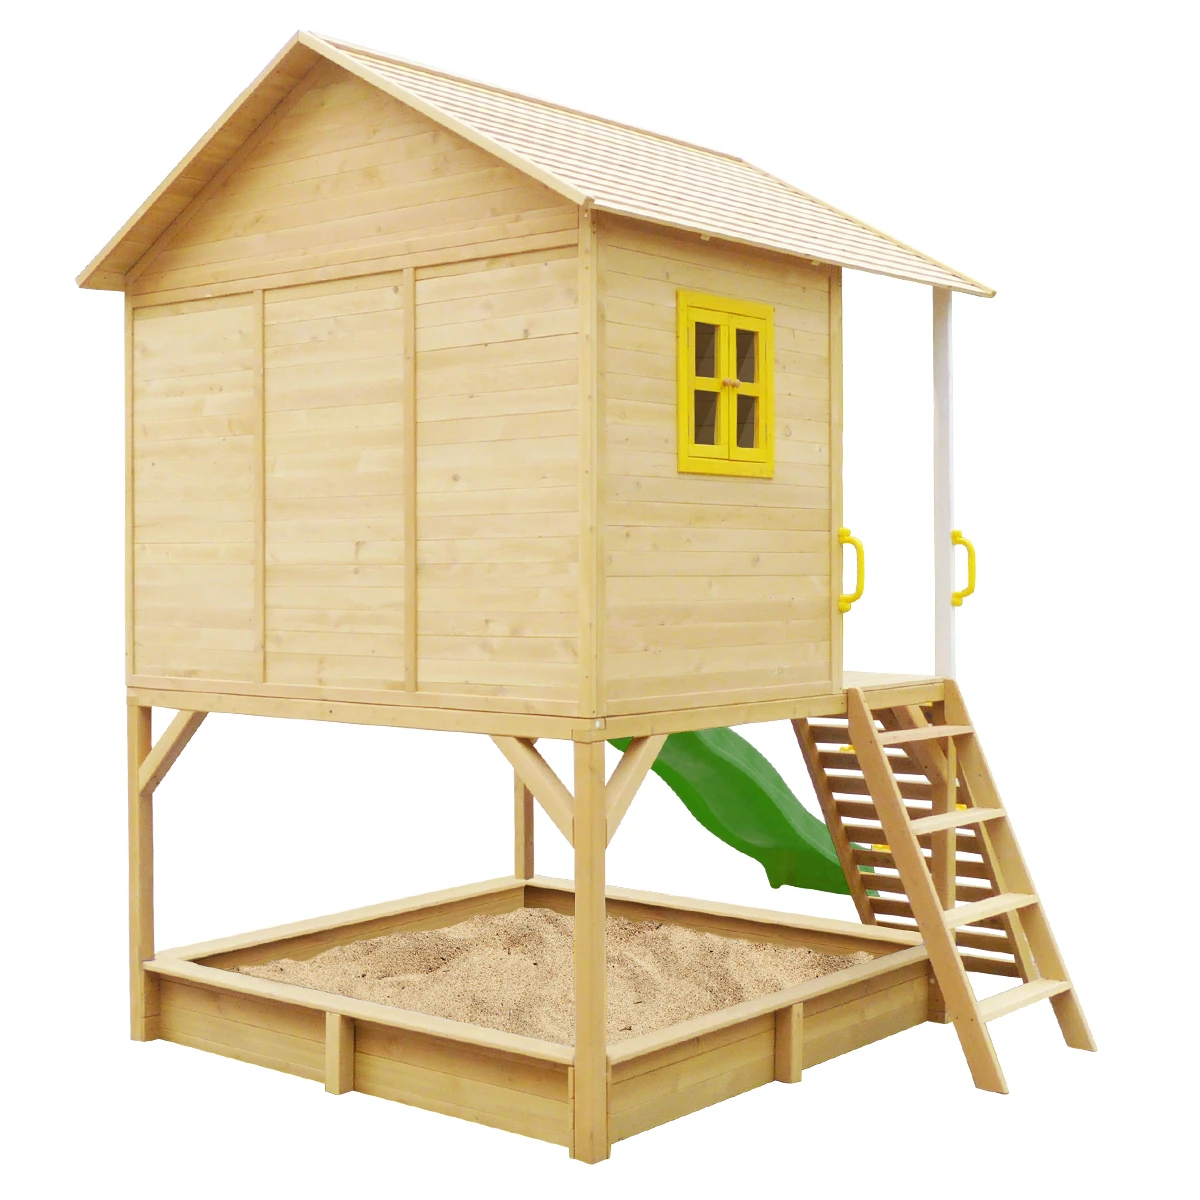 Warrigal Cubby House set- Green Slide